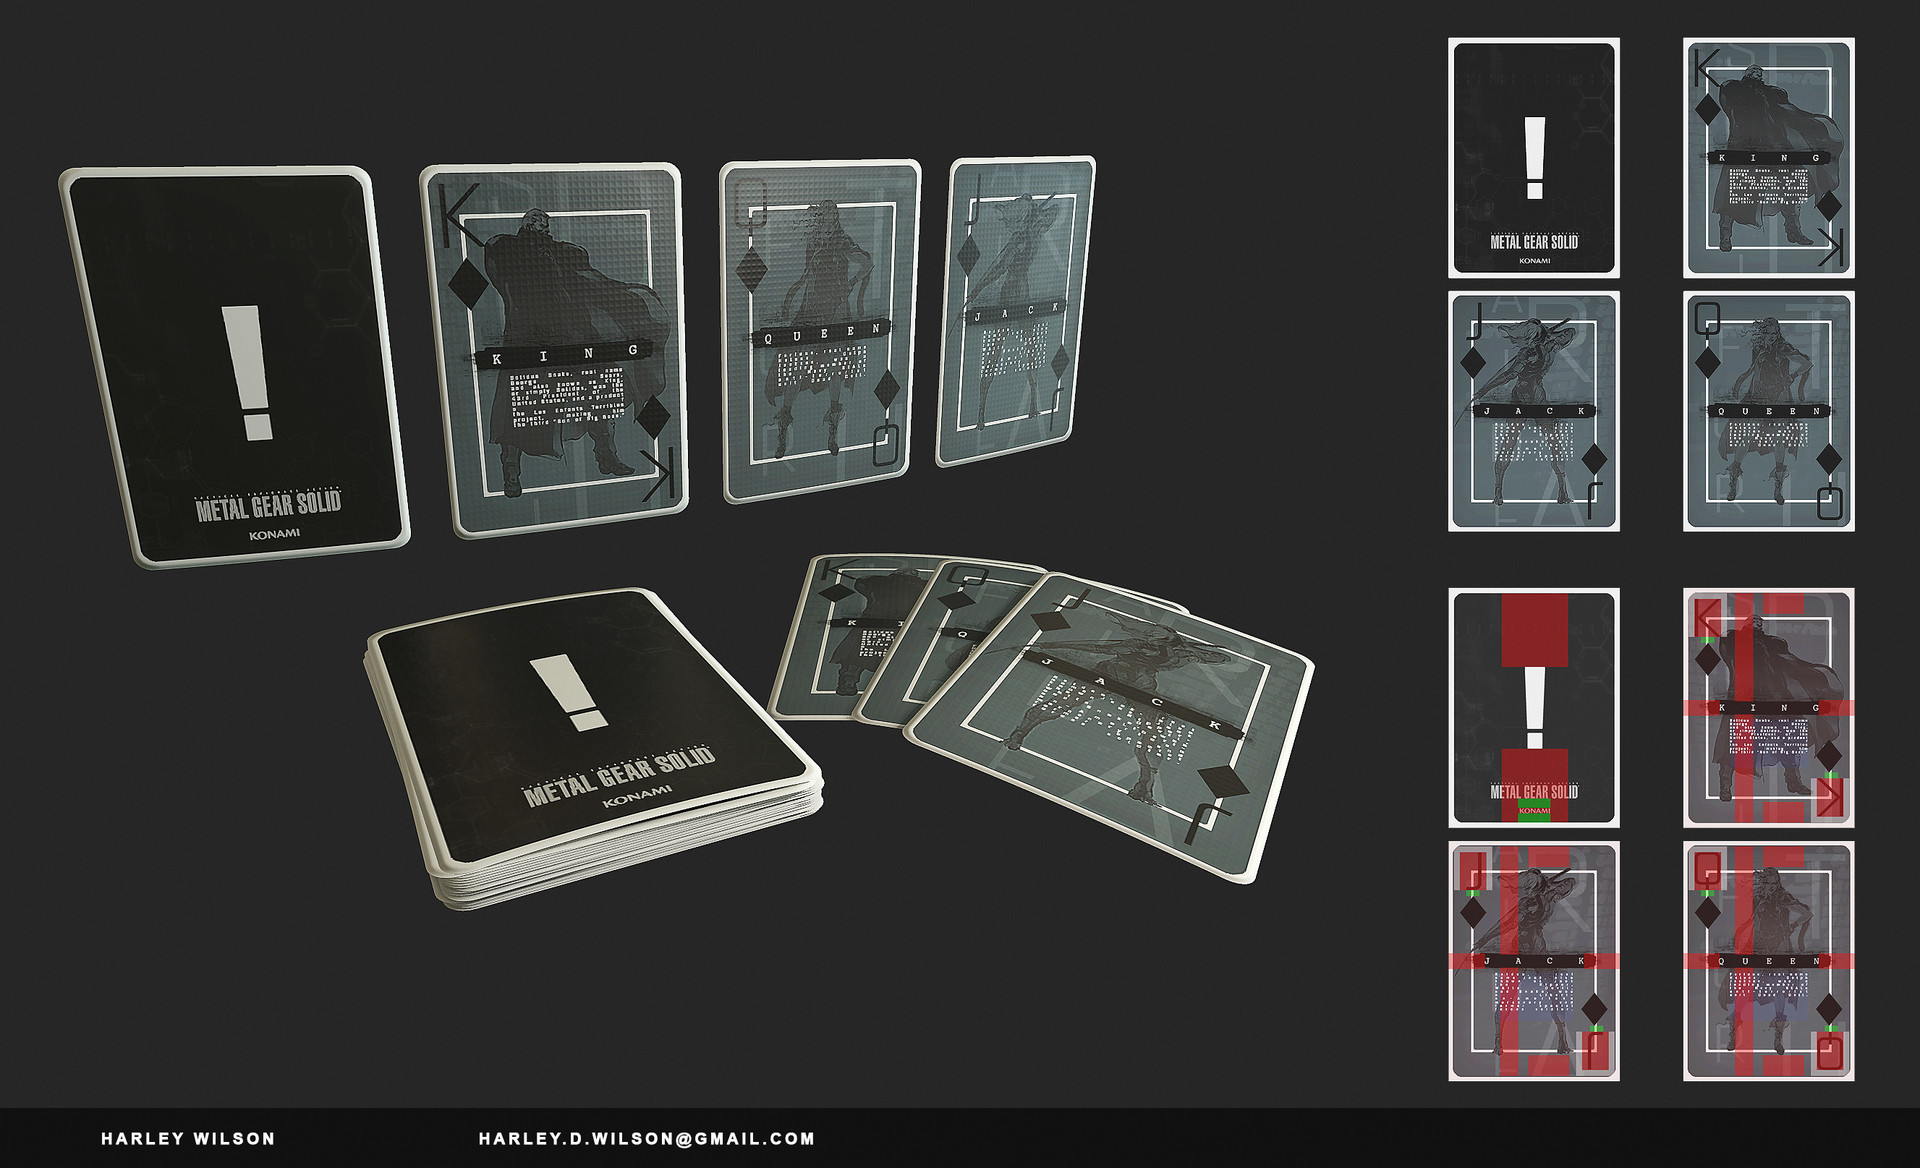 Harley wilson gd playingcards a